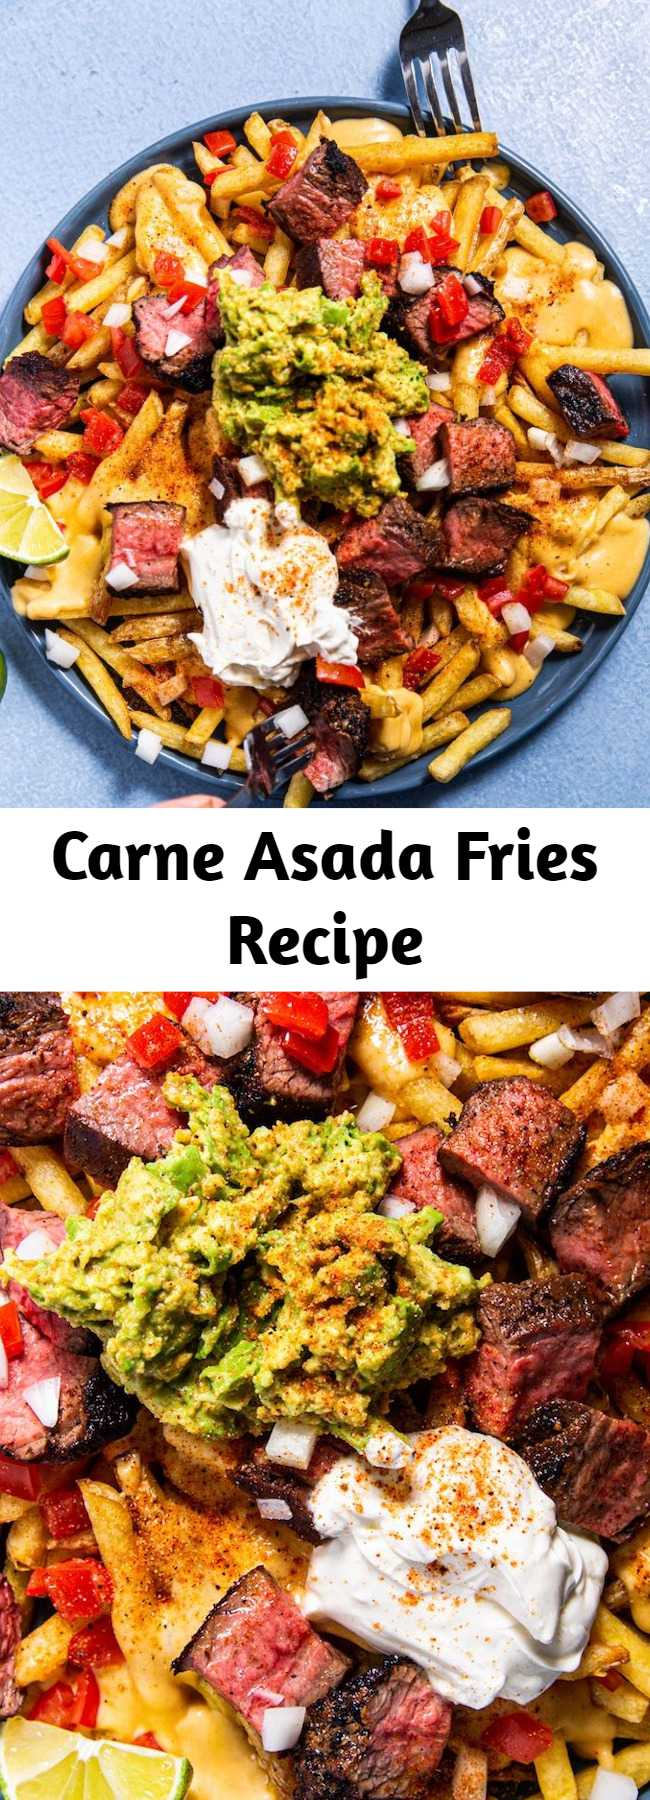 Carne Asada Fries Recipe - These super decadent fries are Tex-Mex in it's truest form. Perfect for watch parties, game-day celebrations, and serious steak cravings.